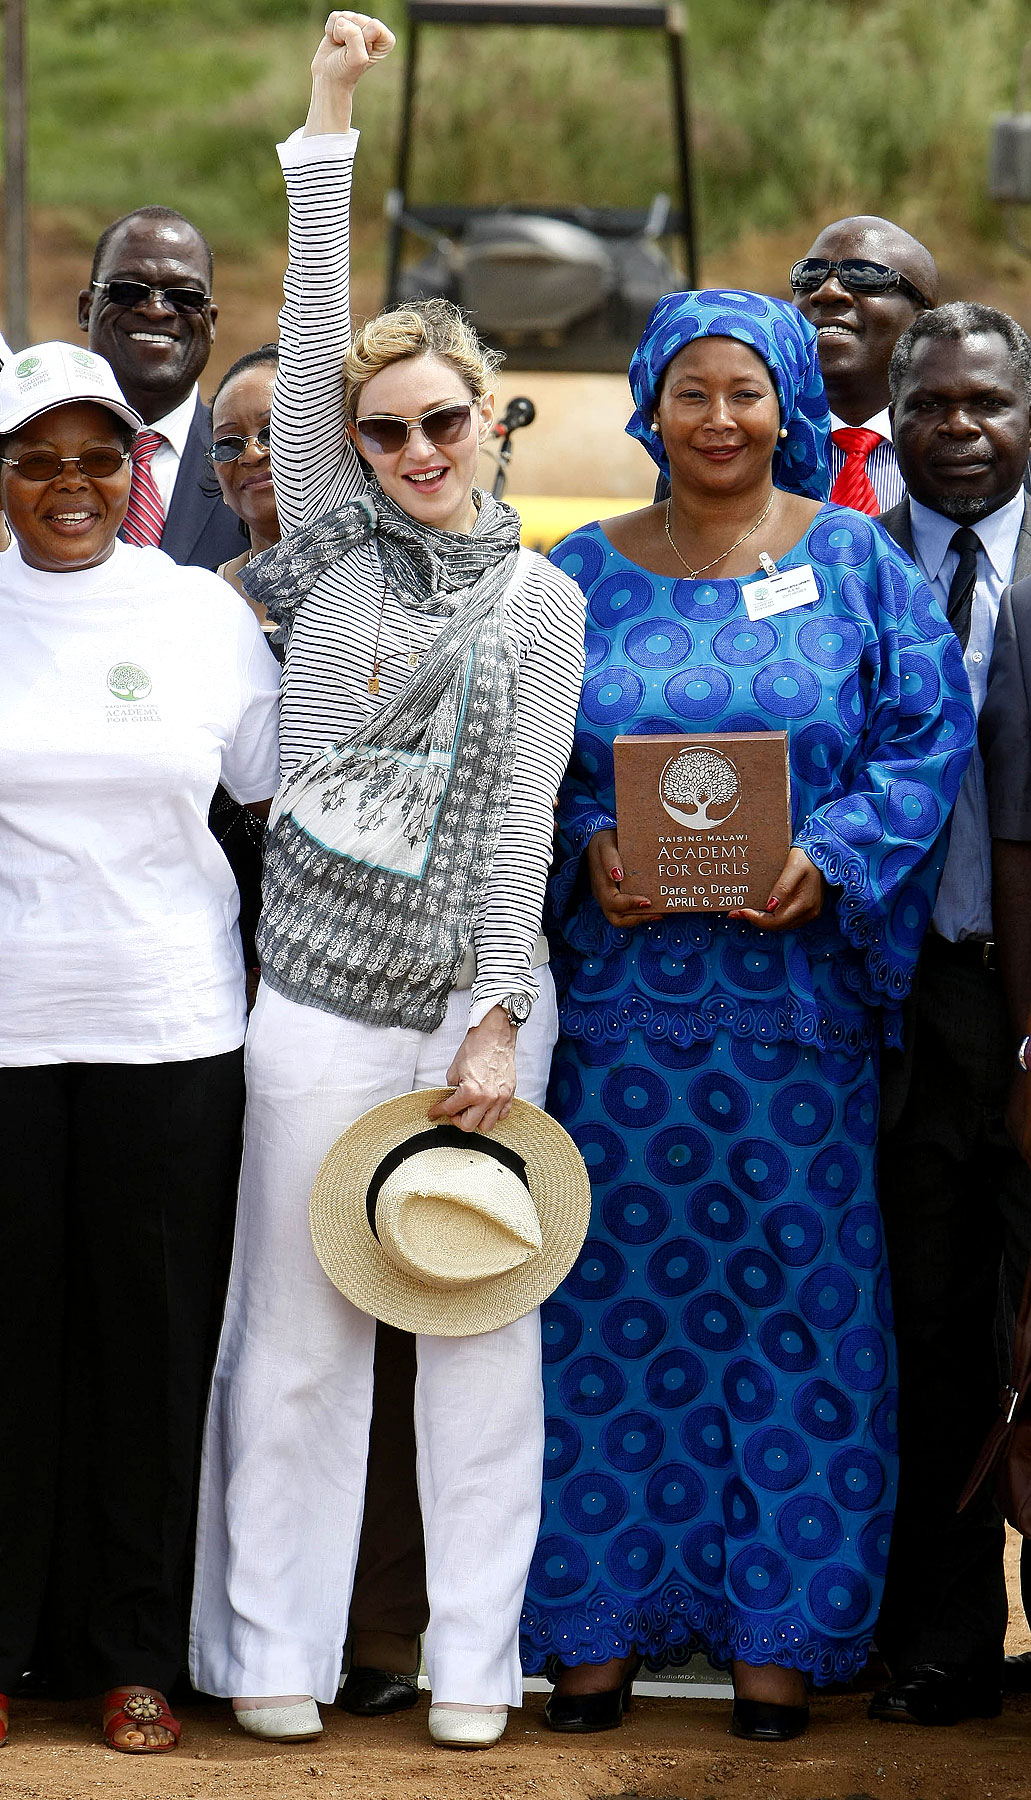 Madonna Channels Oprah, Builds Academy For Girls In Malawi (PHOTOS)